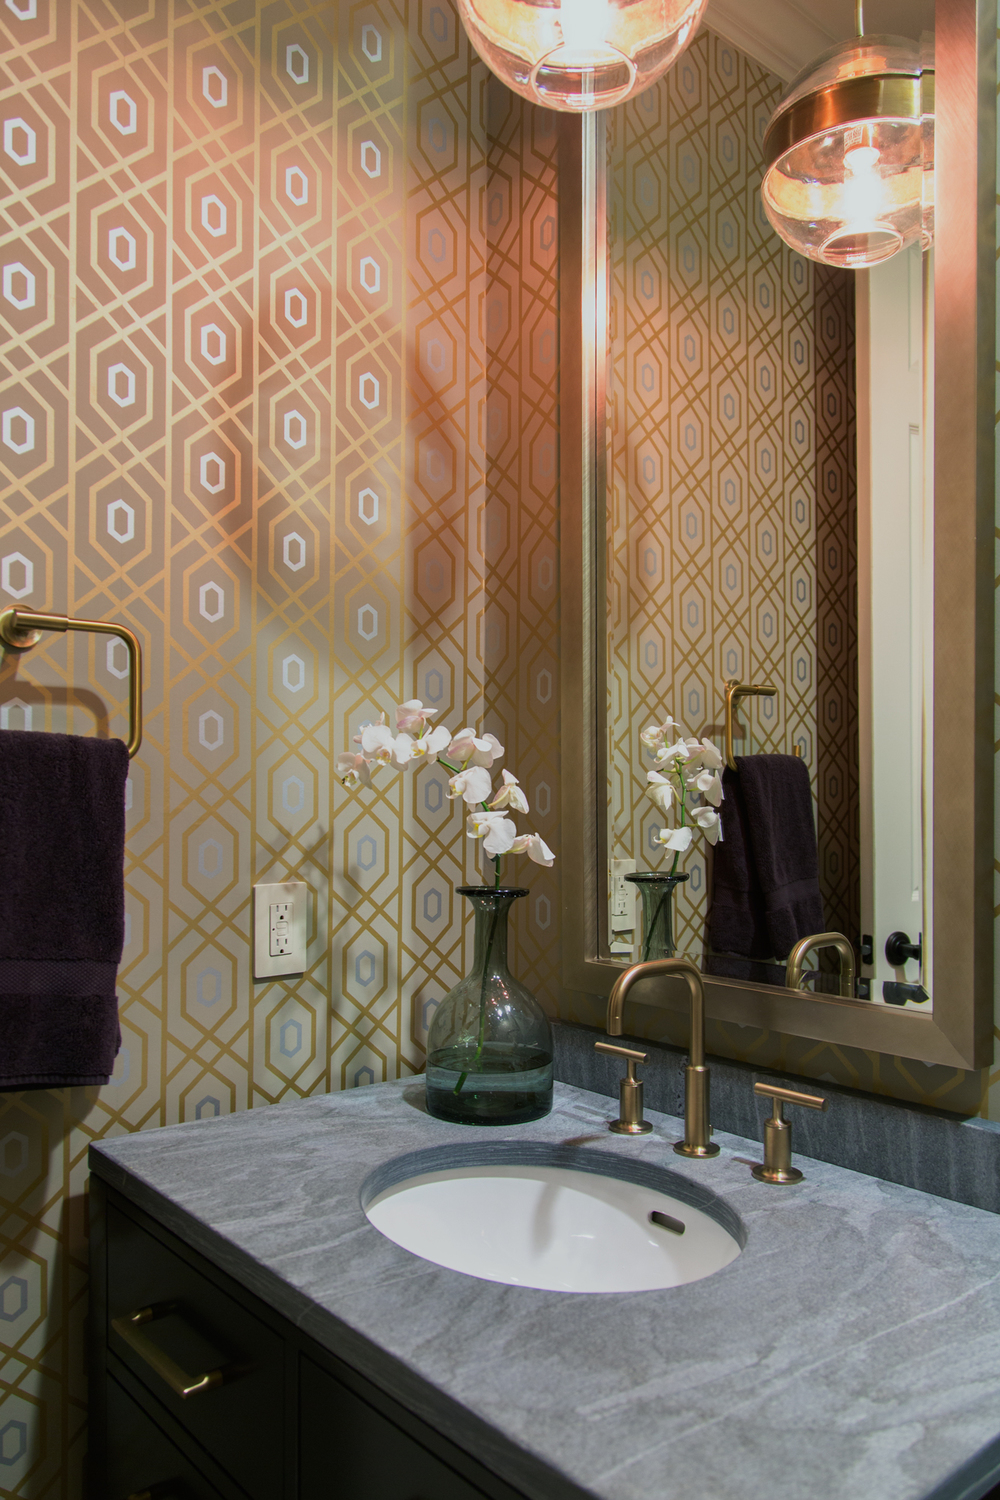 Bathroom Remodel | Designer: Carla Aston / Photographer: Tori Aston